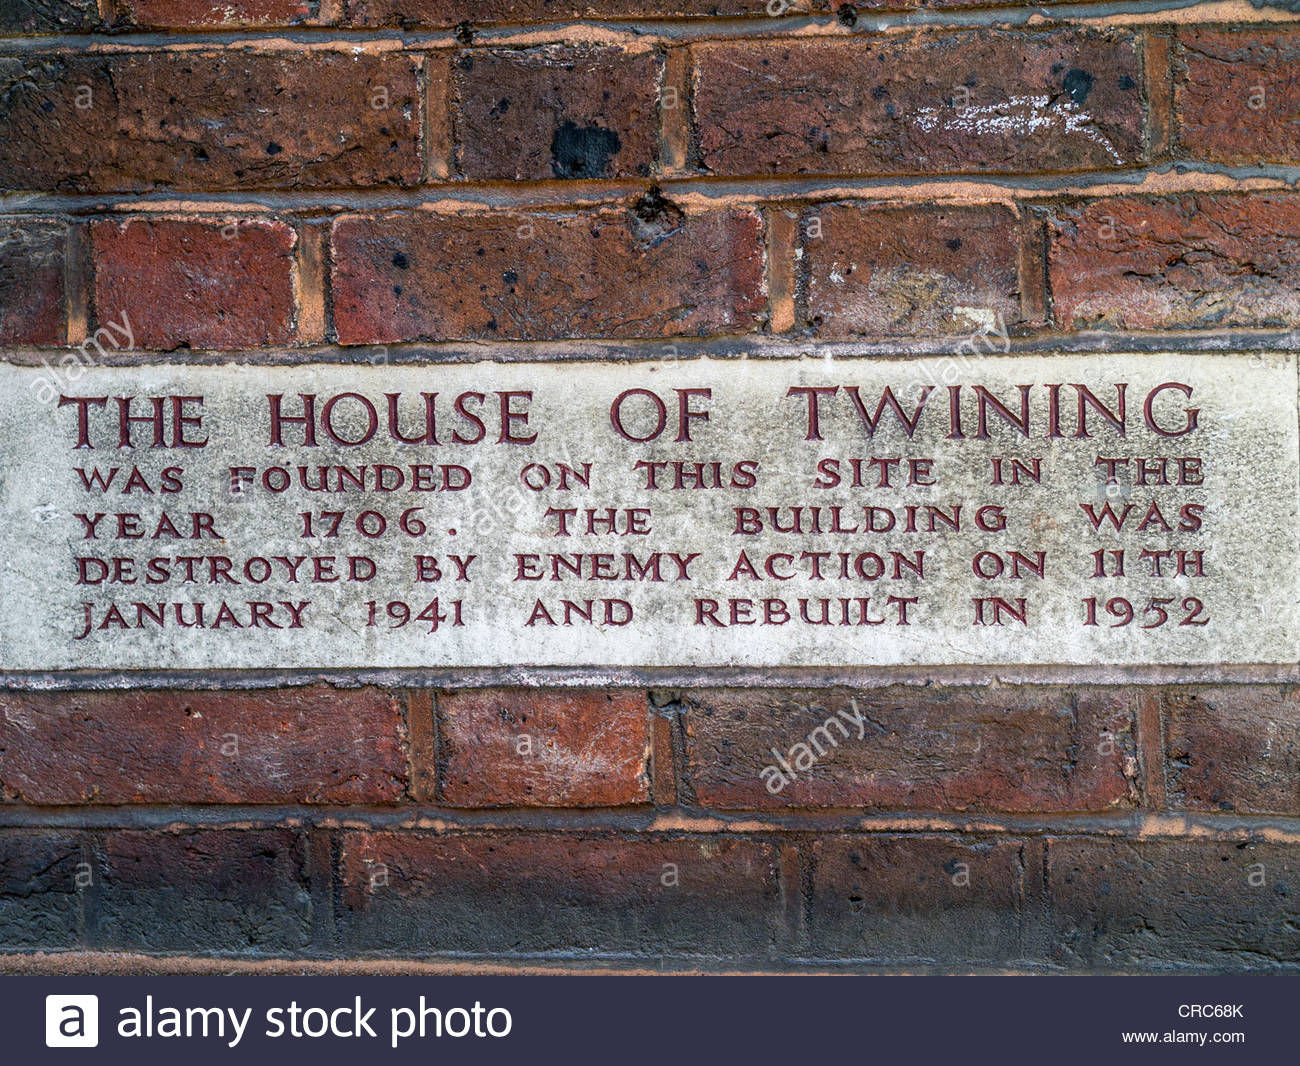 Wall sign marking the location of 'The House of Twining', Fleet St, London, UK - Stock Image